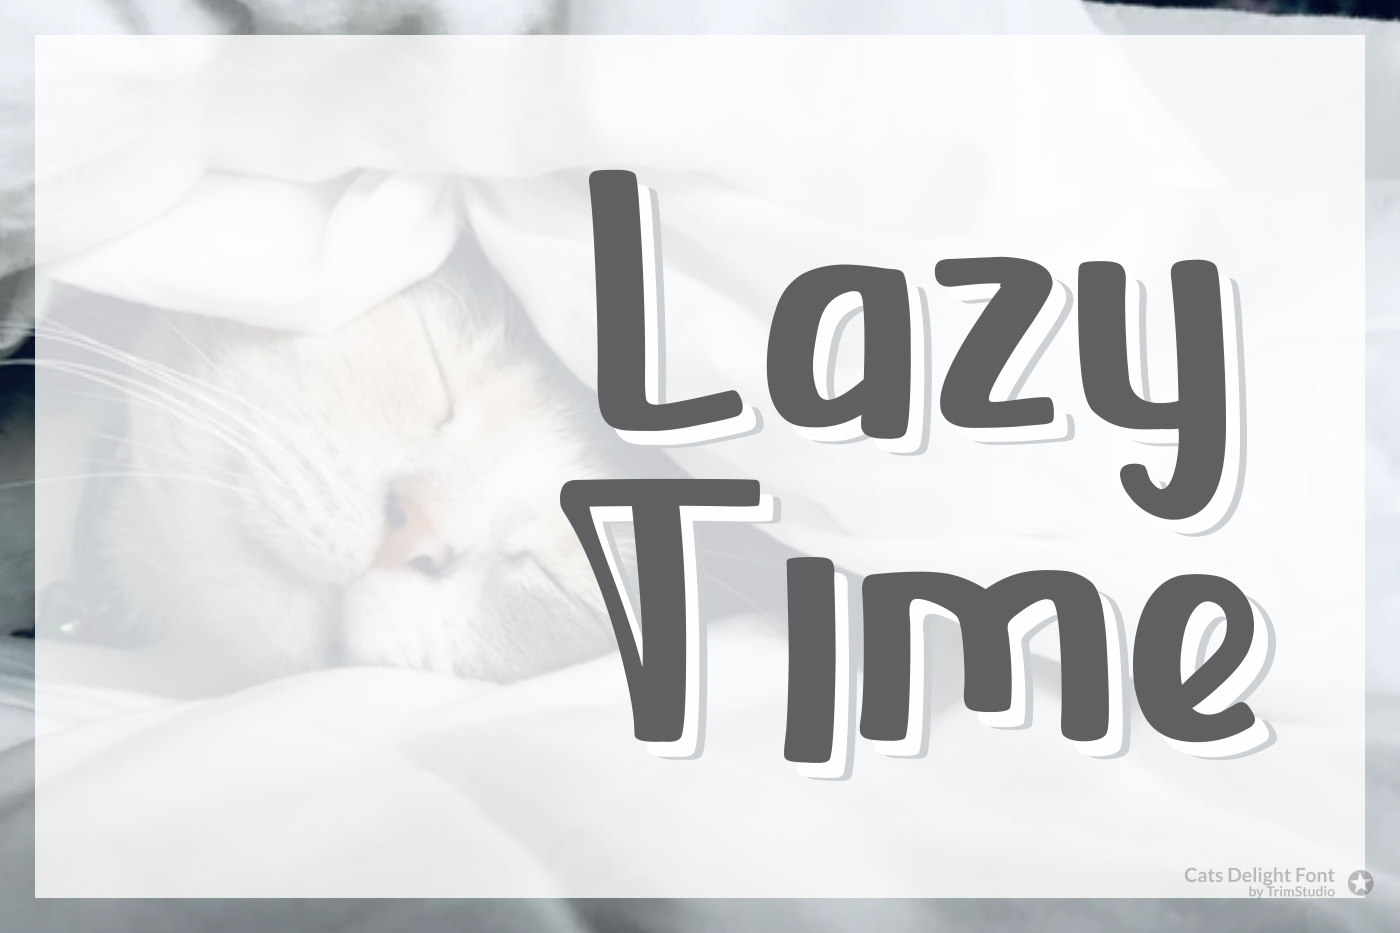 Cats Delight - Cat Display Font example image 3